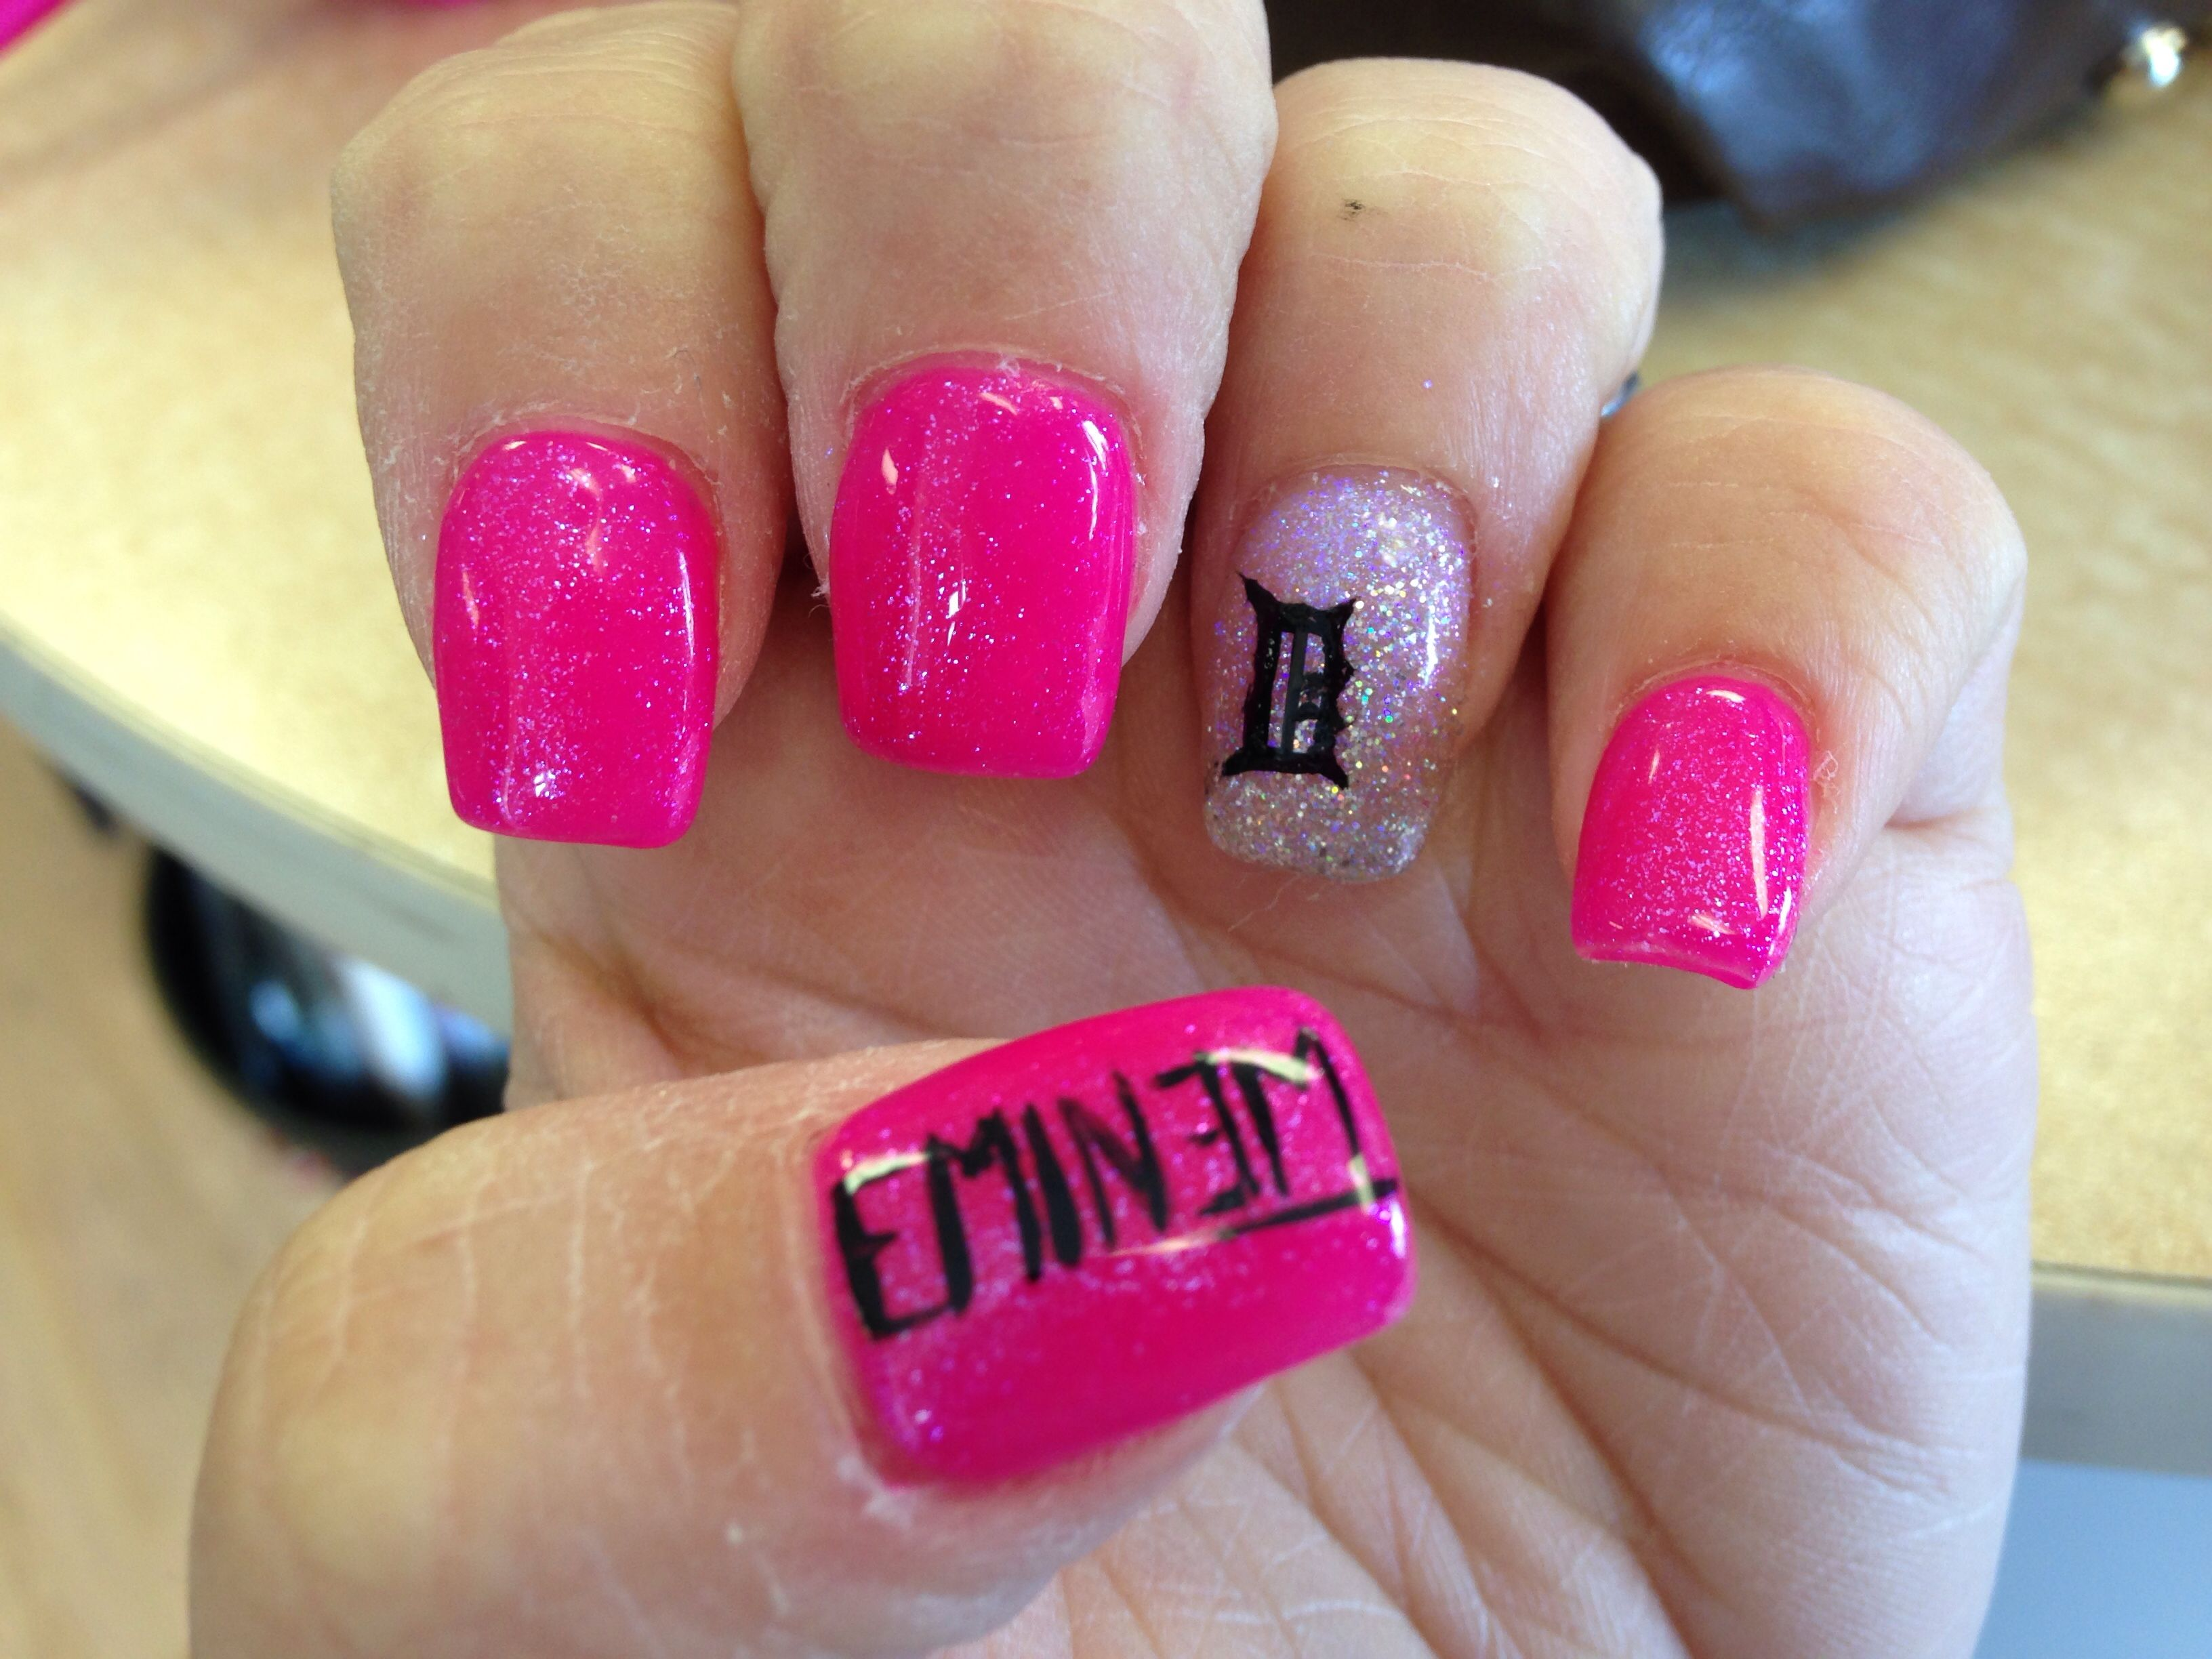 Eminem/Detroit nails! | Nails! | Pinterest | Eminem, Tiger nails and ...